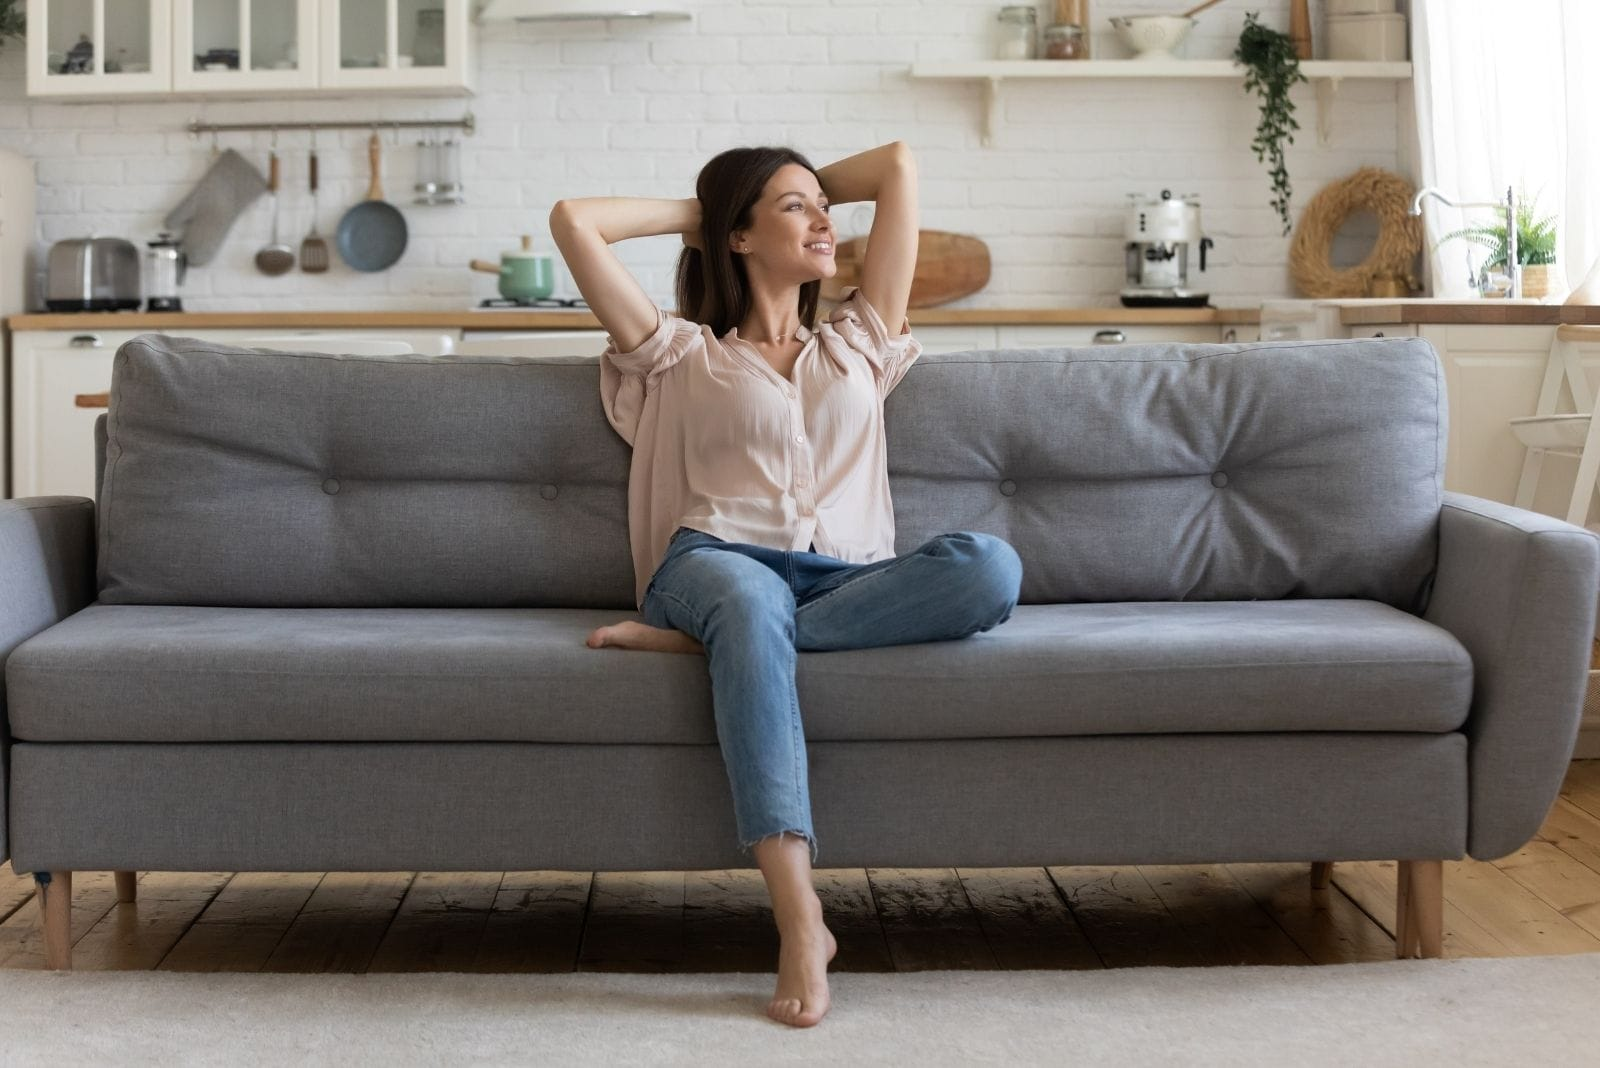 relaxed woman sitting on the gray sofa looking away inside the living room